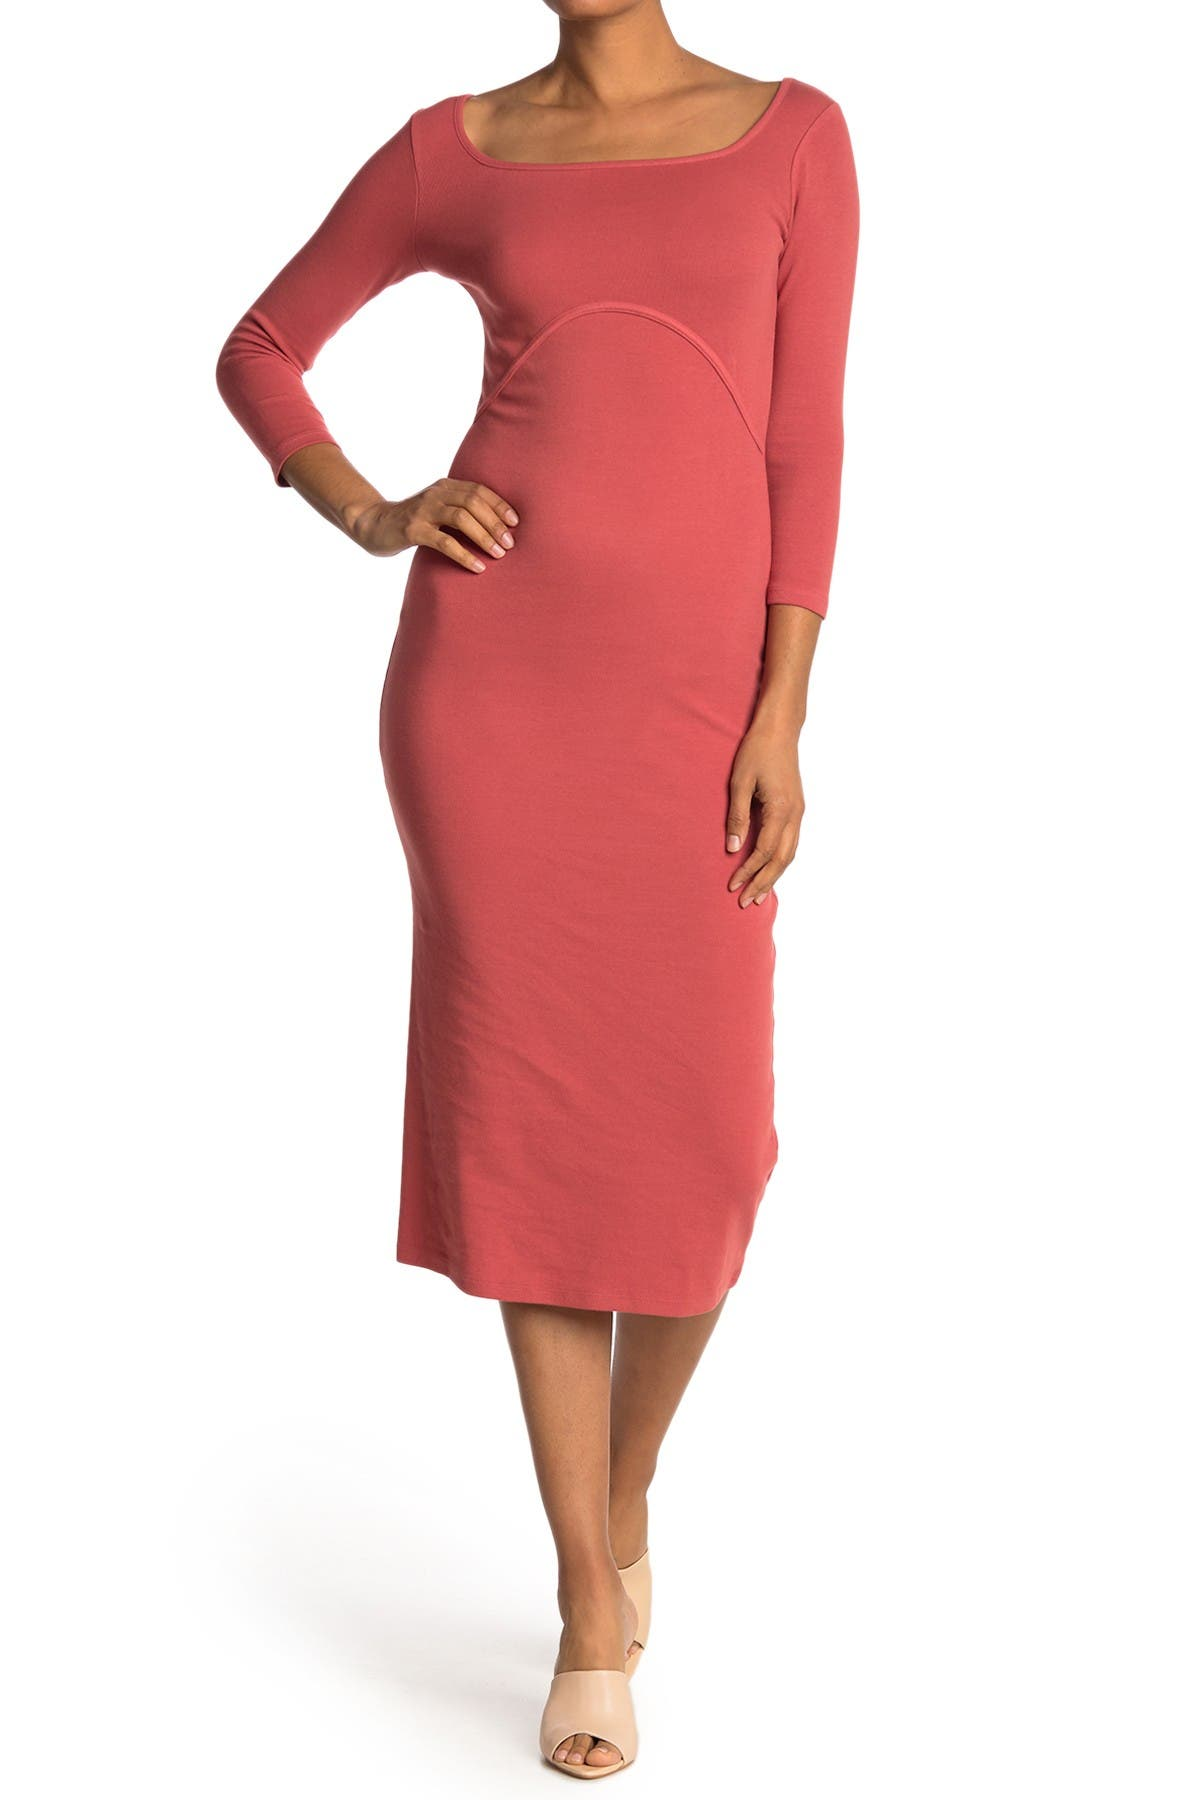 Image of Stateside Rib Square Neck Midi Dress